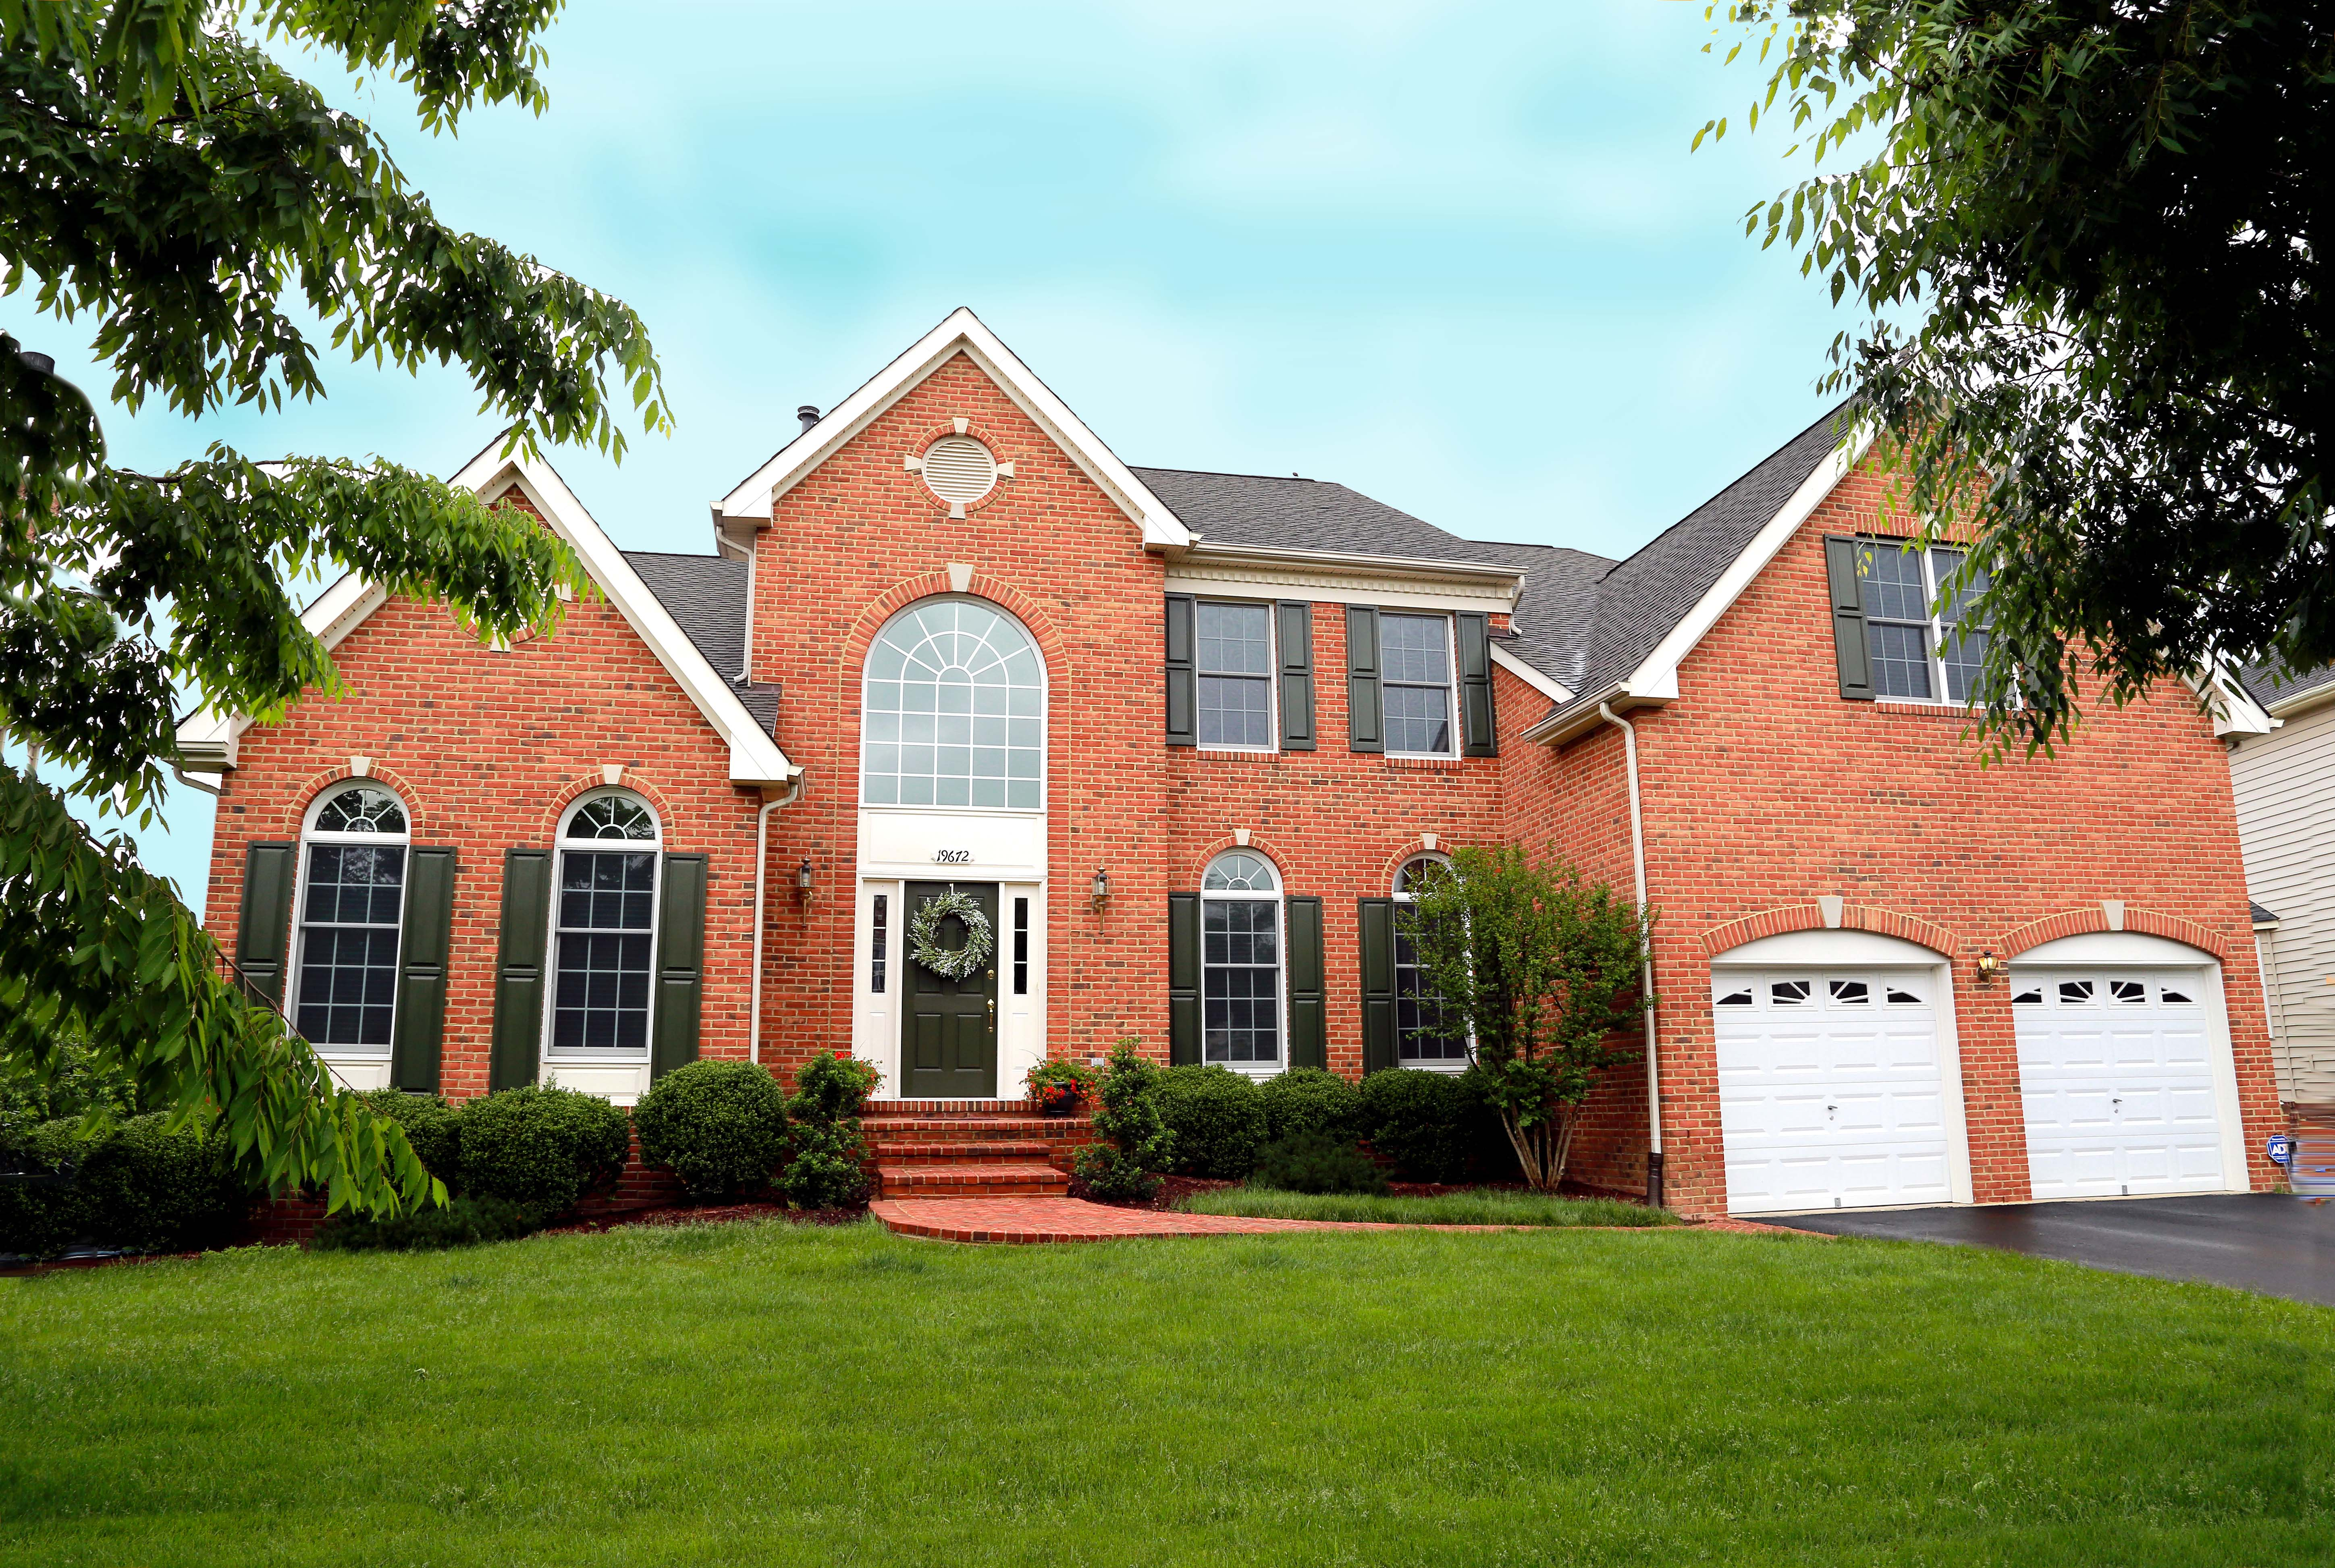 Single Family Home for Sale at 19672 Olympic Club, Ashburn 19672 Olympic Club Ct Ashburn, Virginia 20147 United States